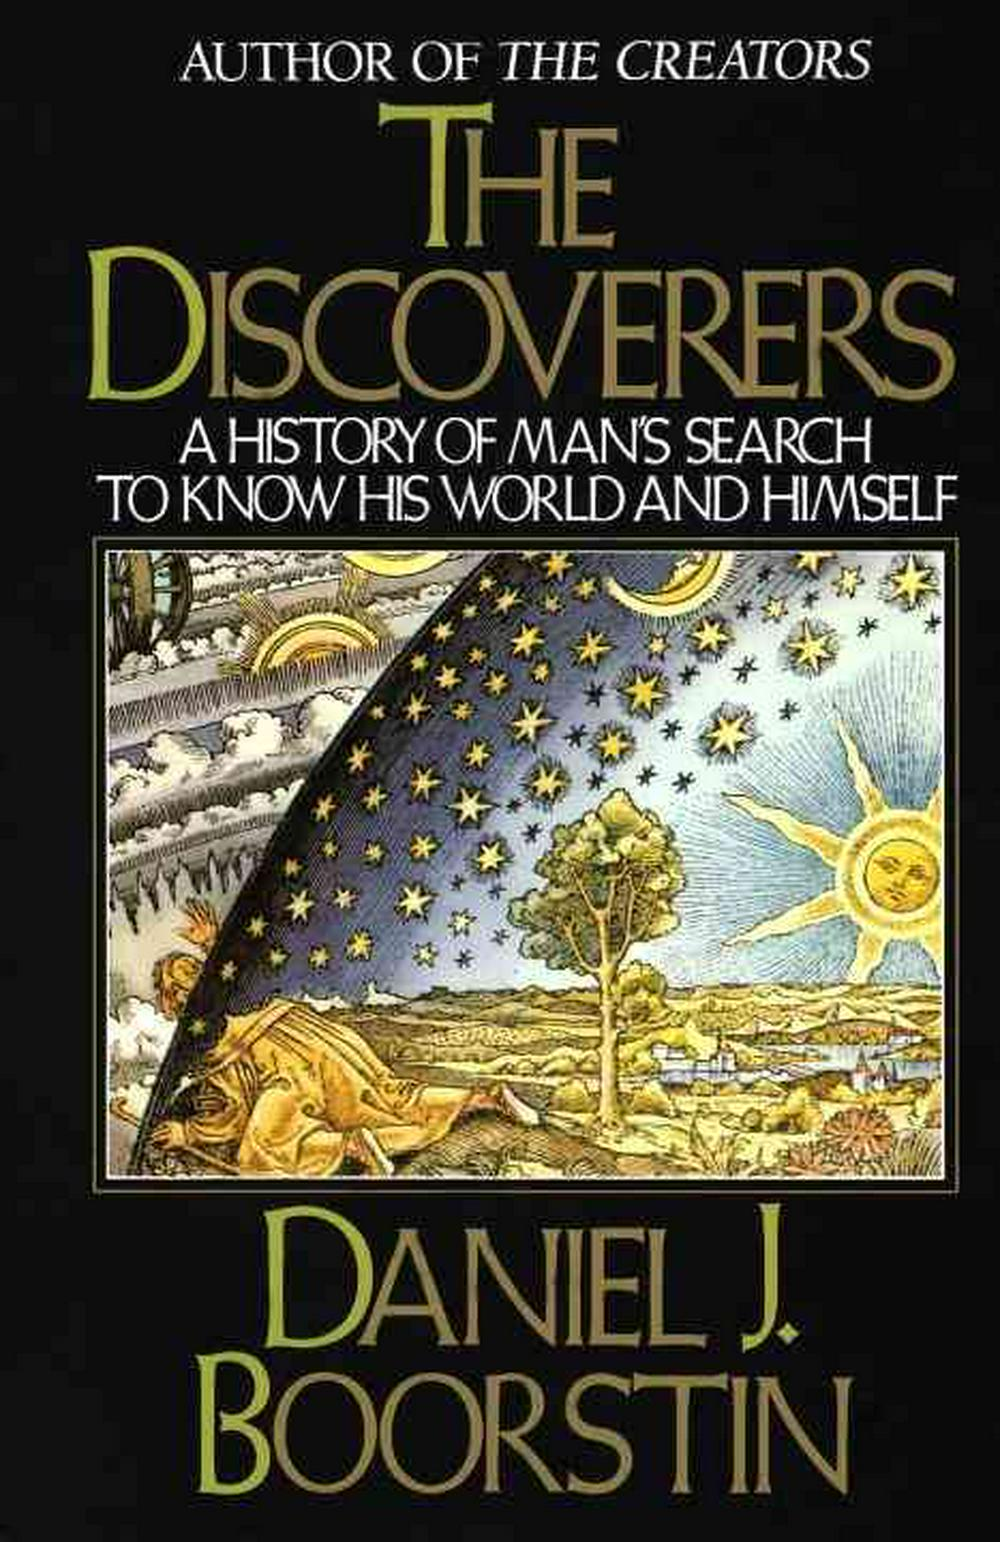 History of Man's Search to Know His World and Himself